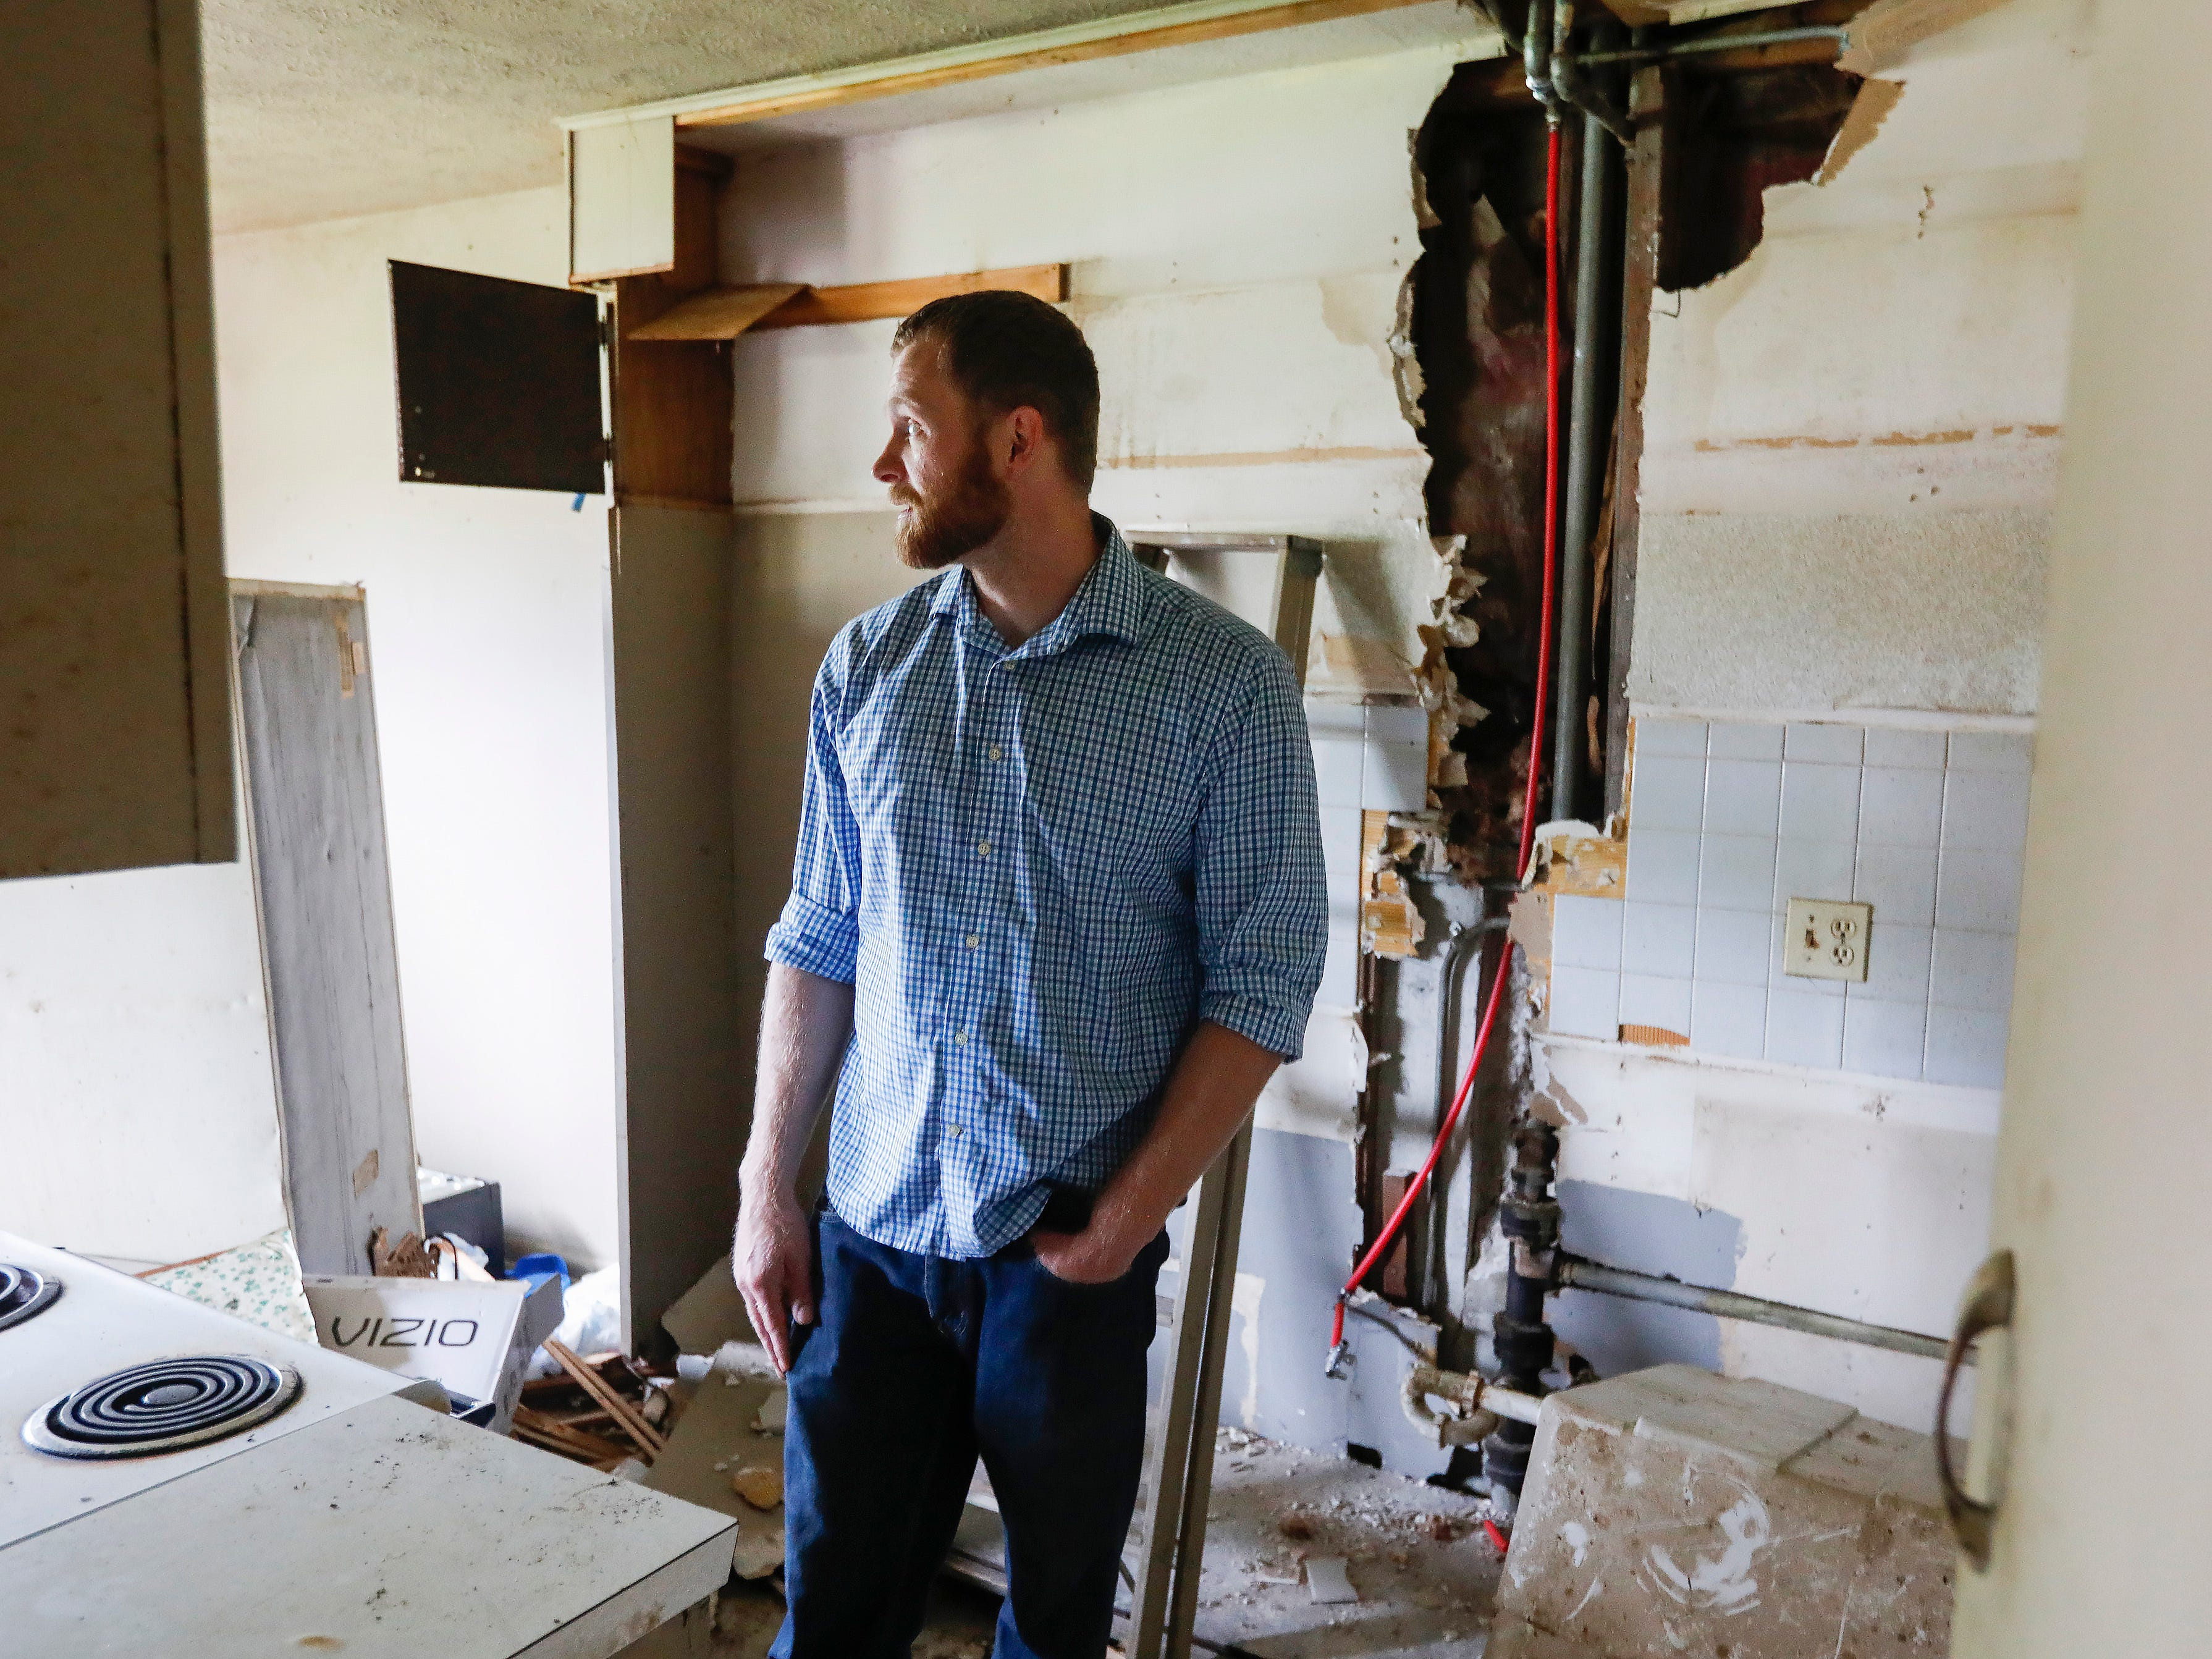 This apartment at 2107 E Cherry St., that was previously owned by Chris Gatley, was left dirty and in disarray when the previous tenant moved out. Adam Stacey, the new landlord, is in the process of cleaning up and renovating the building.